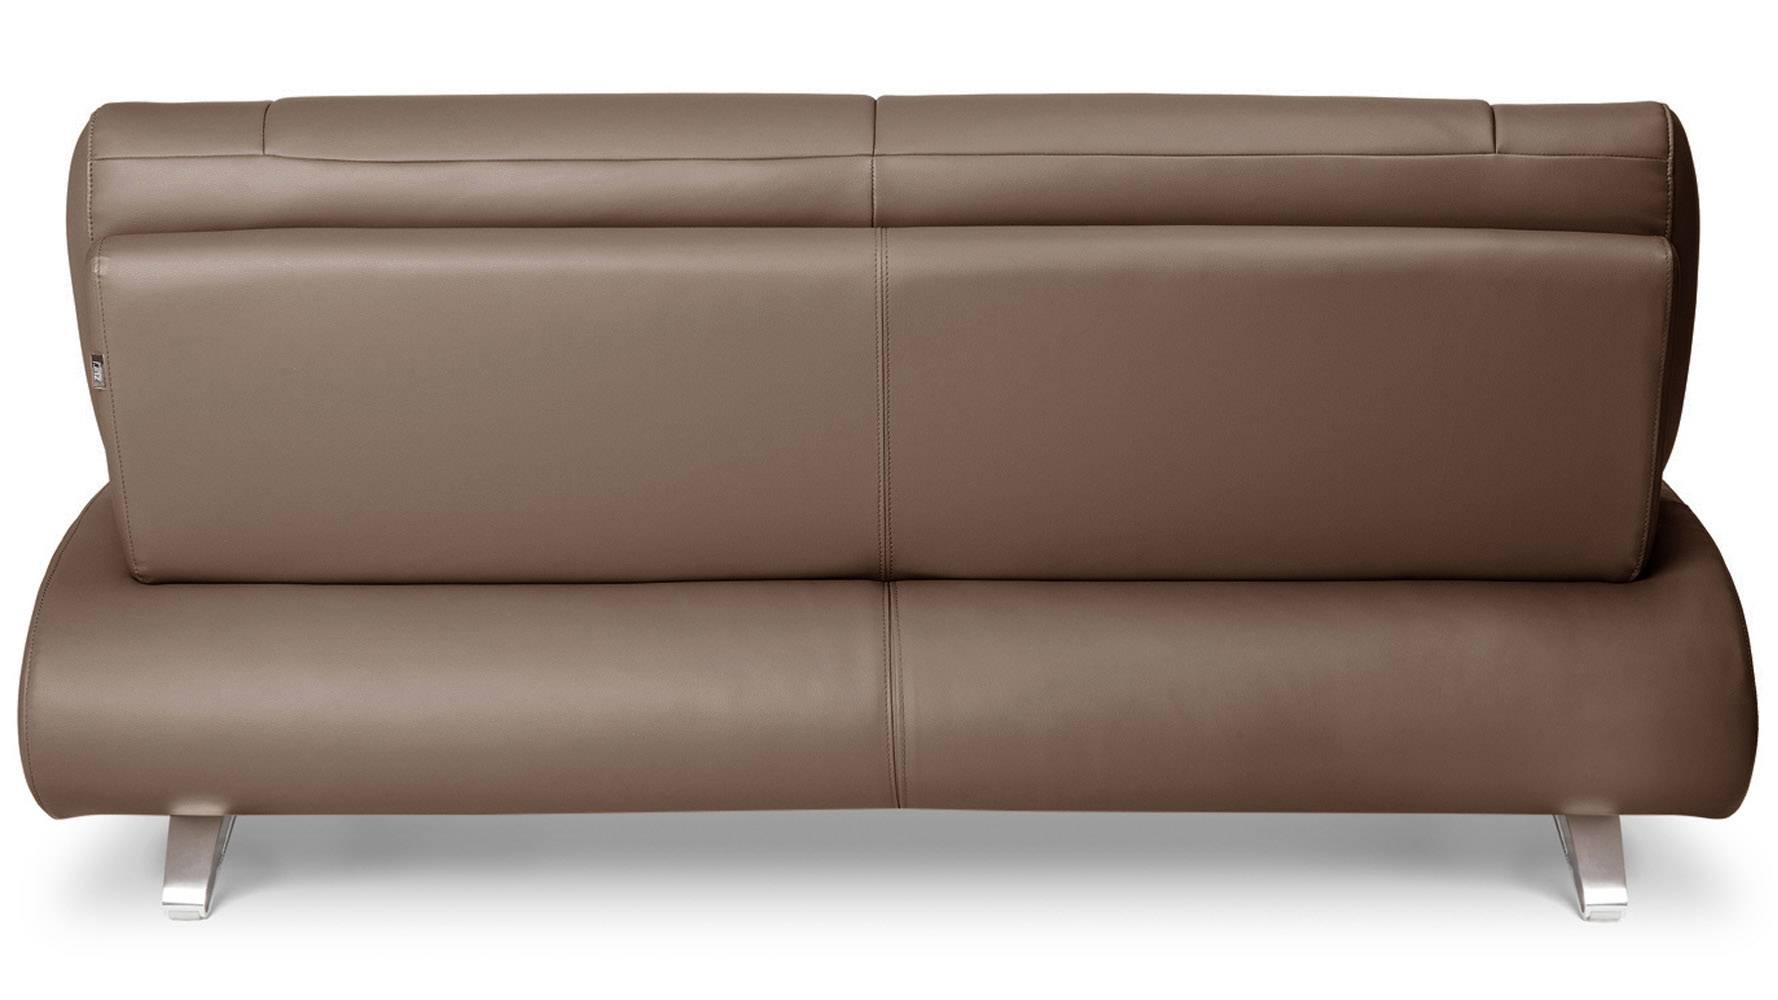 Brown Aspen Leather Sofa Set With Loveseat And Chair | Zuri Furniture intended for Aspen Leather Sofas (Image 15 of 30)